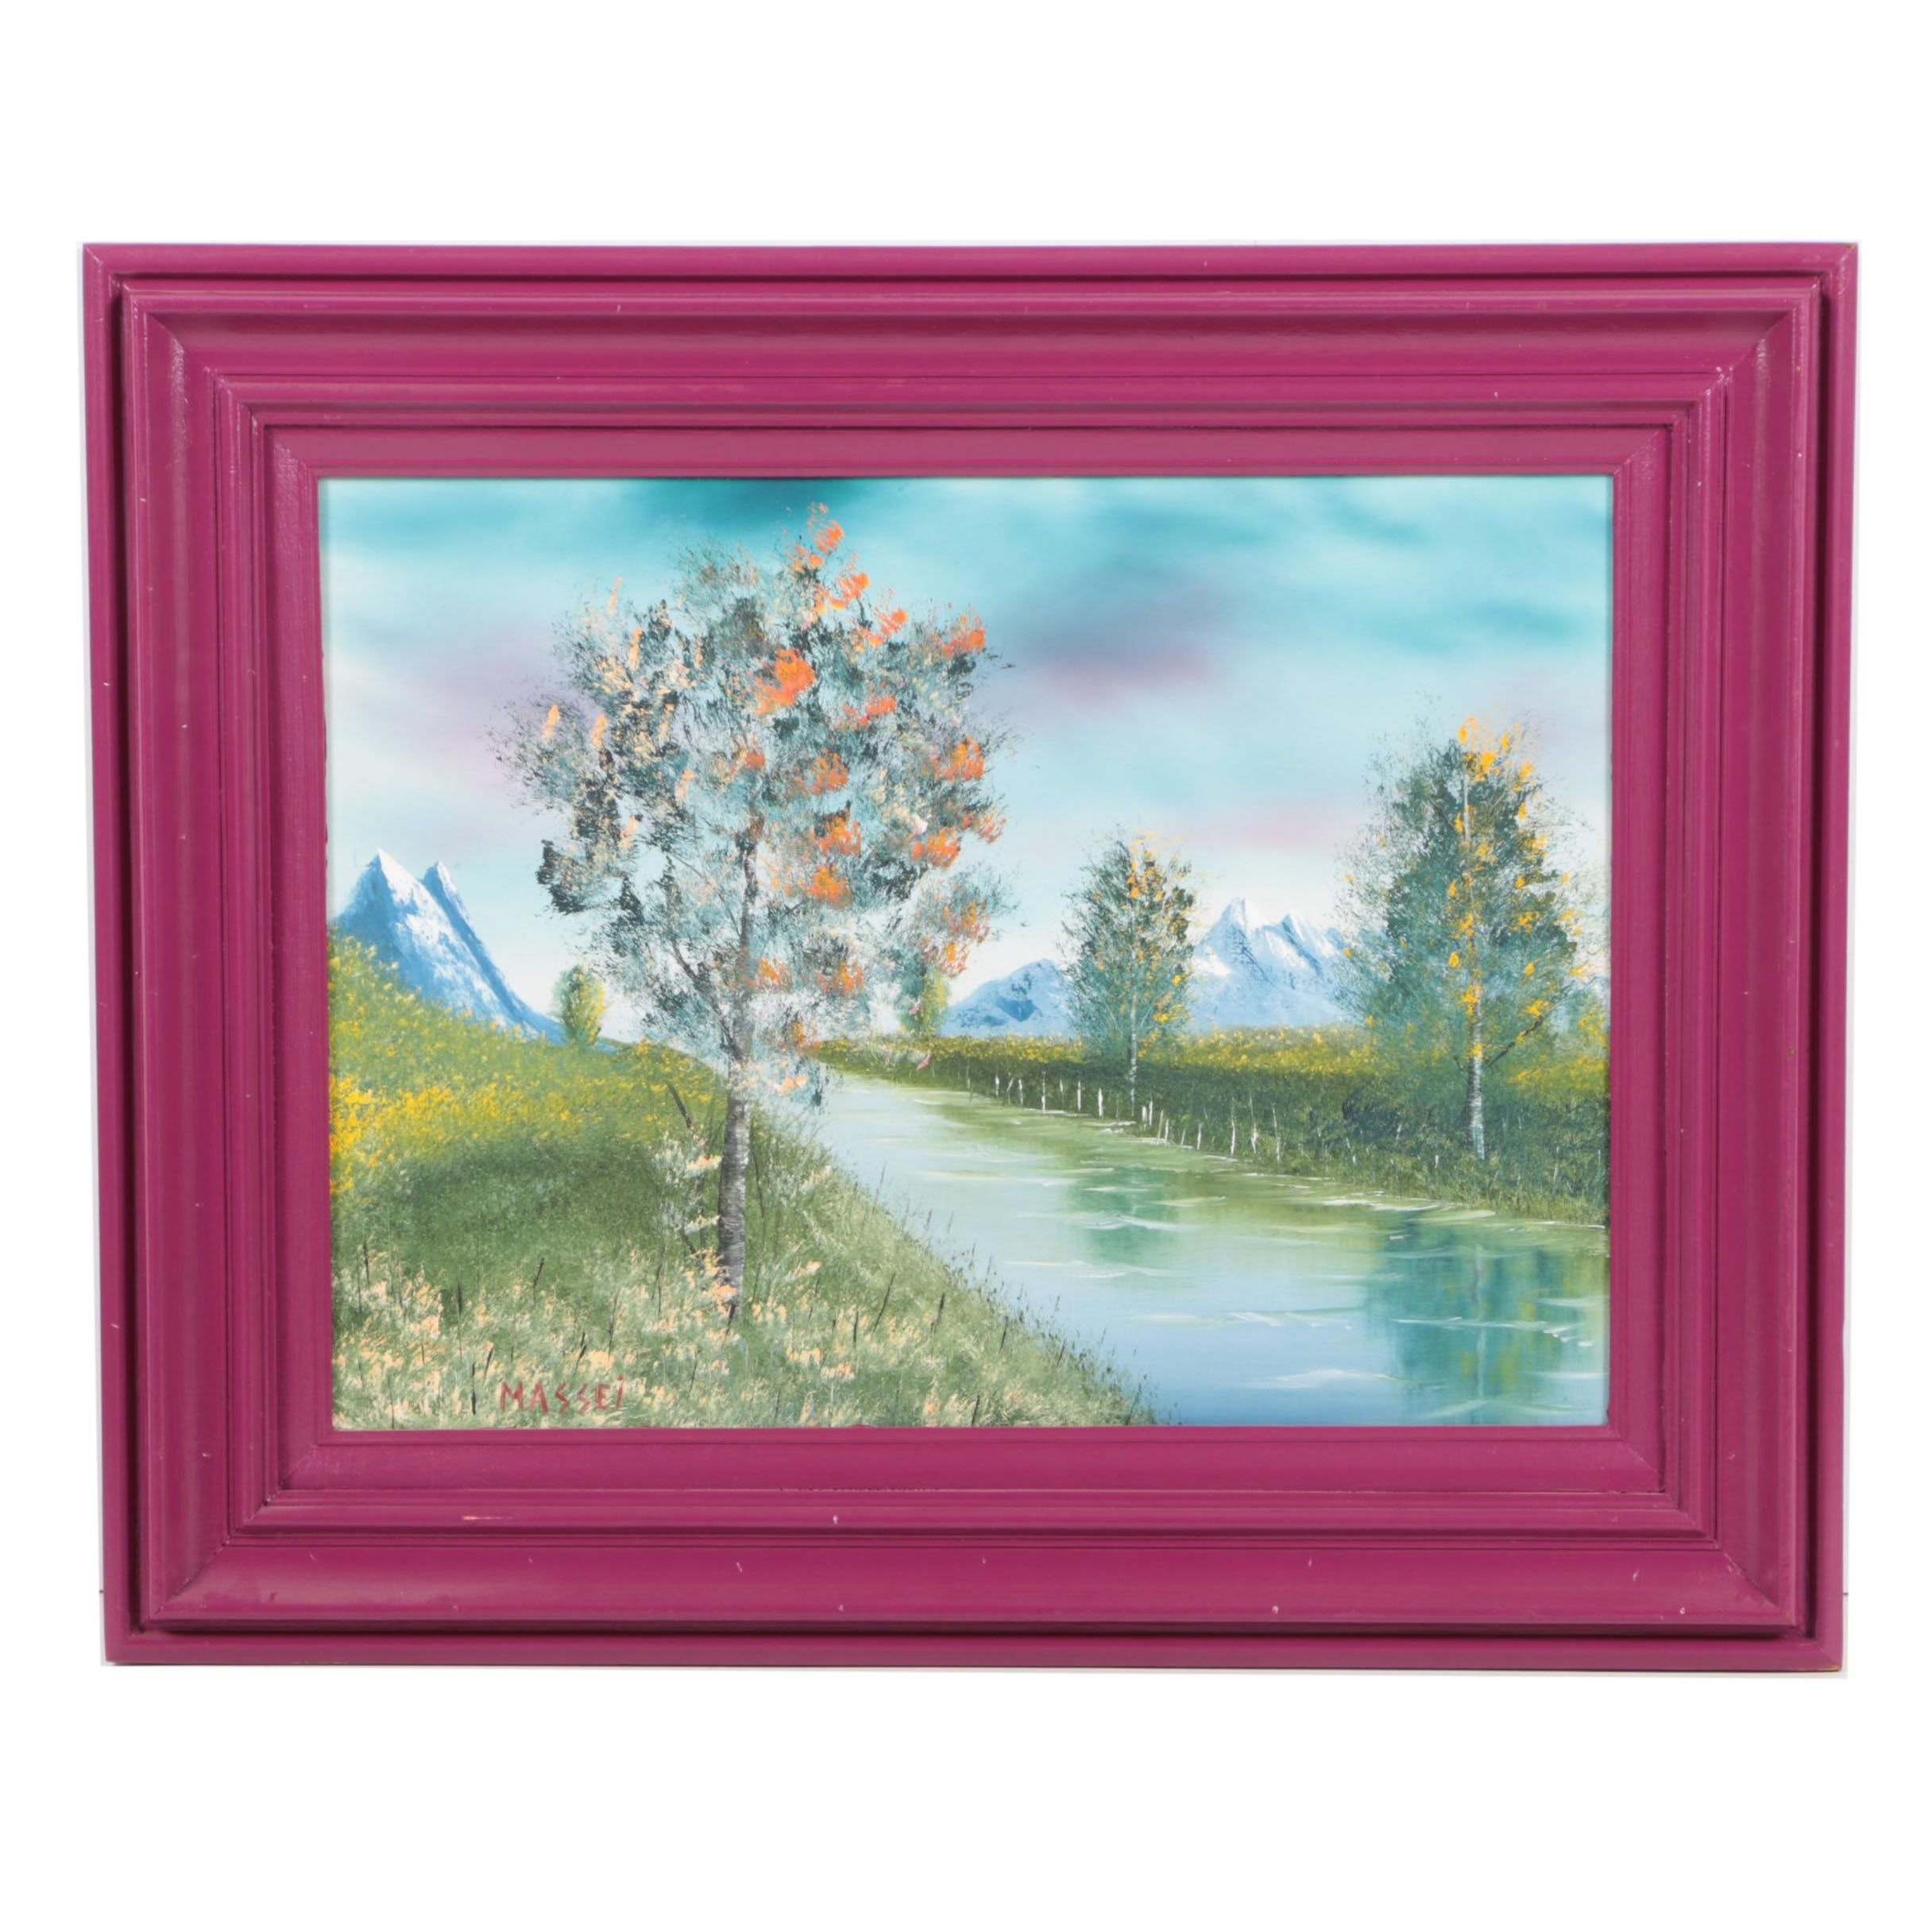 Massei Oil Painting on Canvas of Wooded Landscape